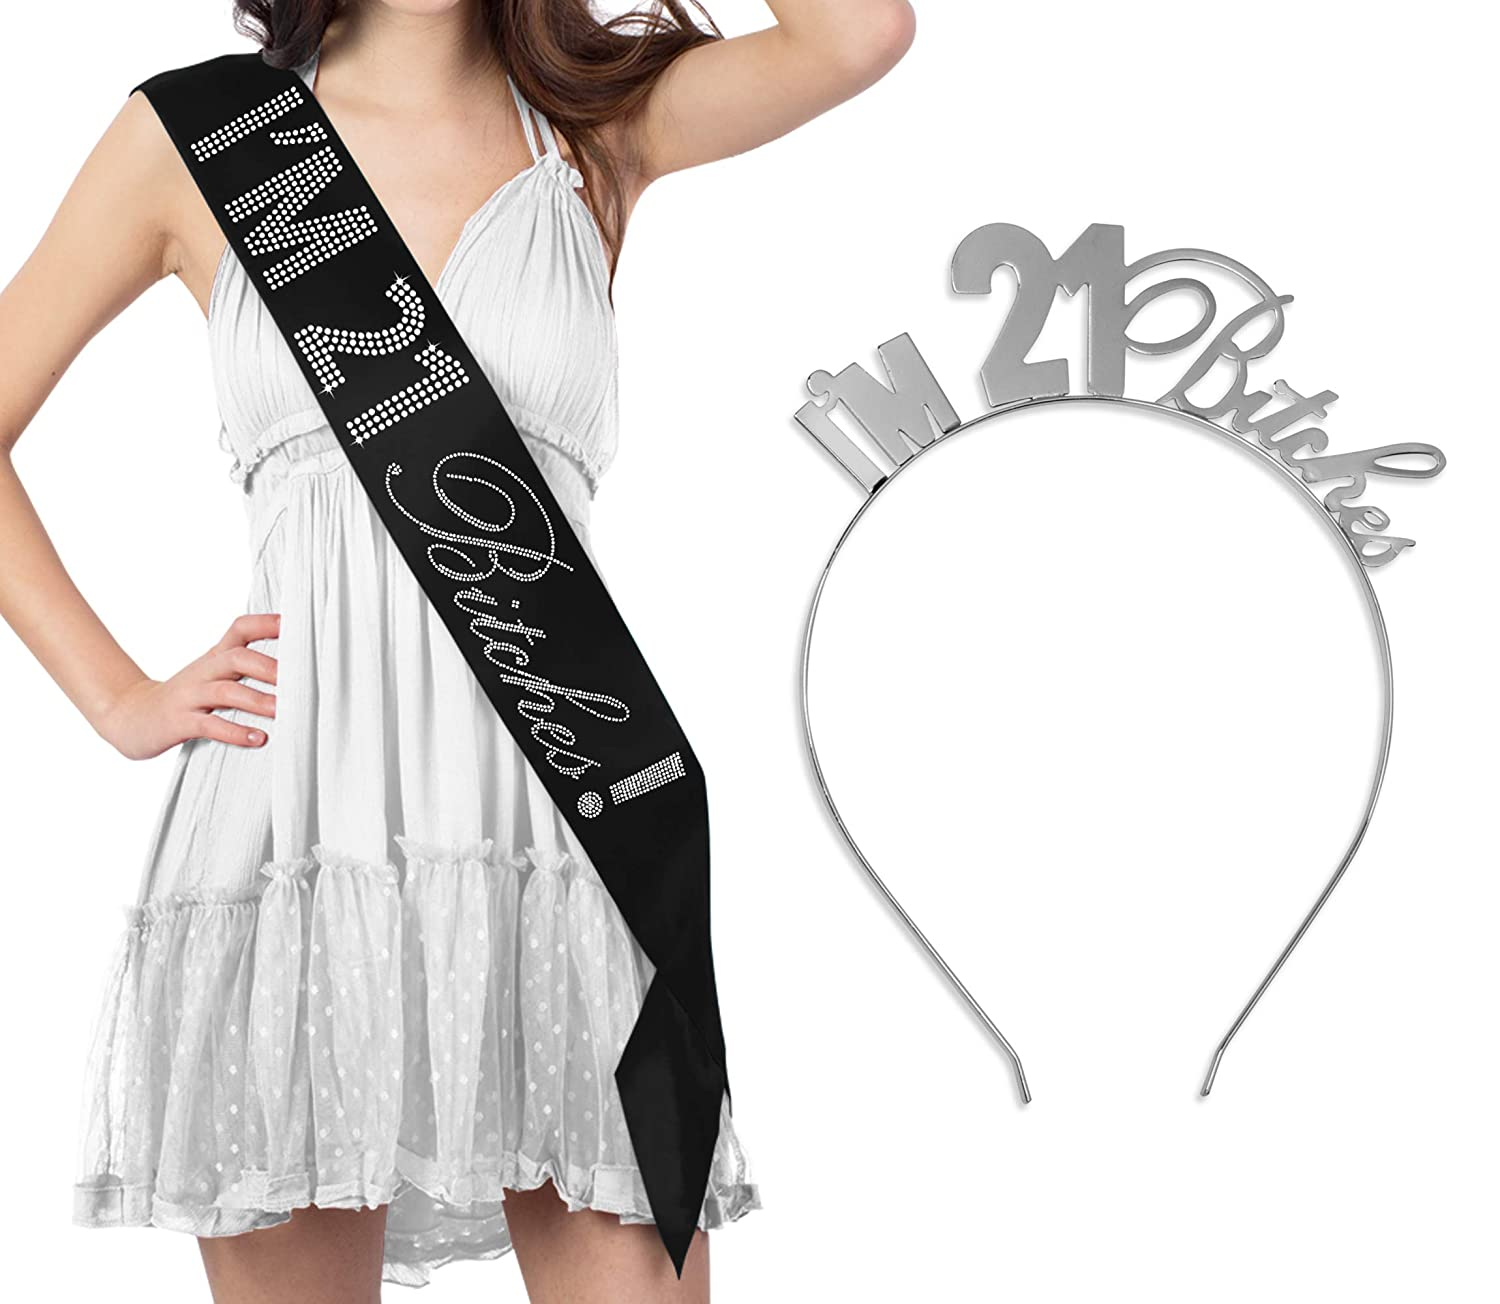 21st Birthday Sash & Tiara Headband Gift Set - I'm 21